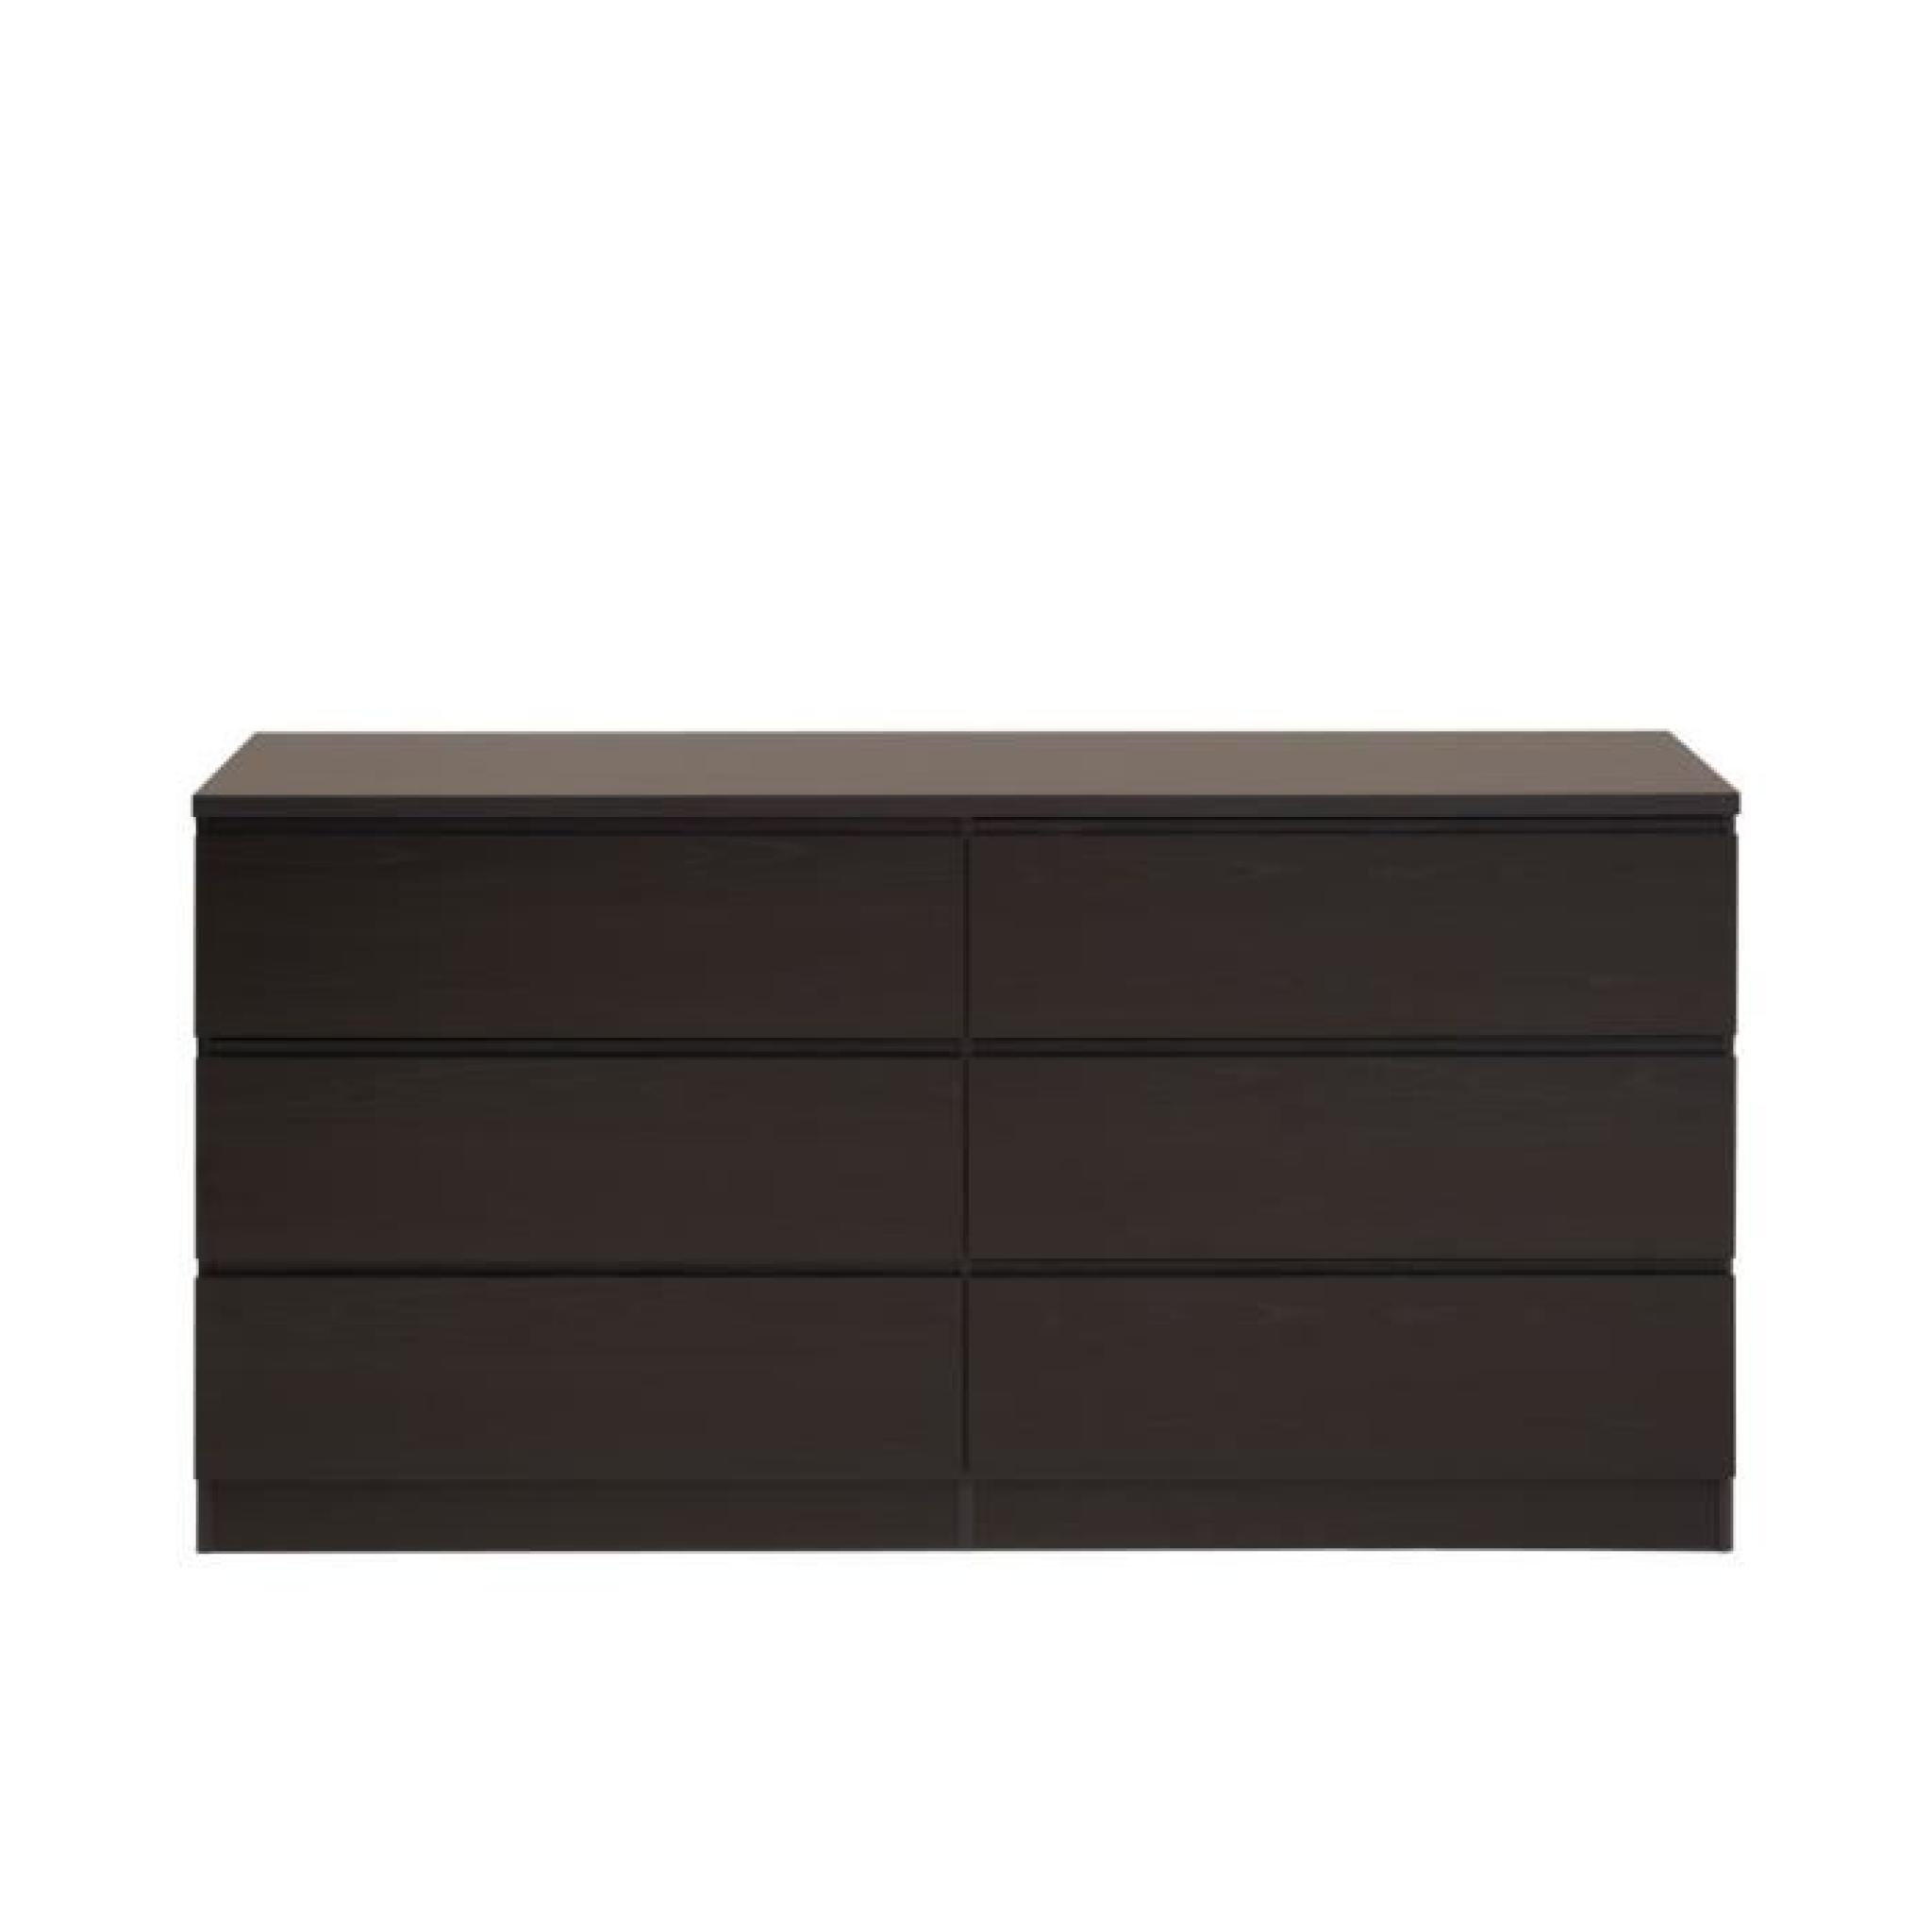 commode weng ikea elegant commode blanc conforama meuble tv ikea pas cher meuble tlvision. Black Bedroom Furniture Sets. Home Design Ideas